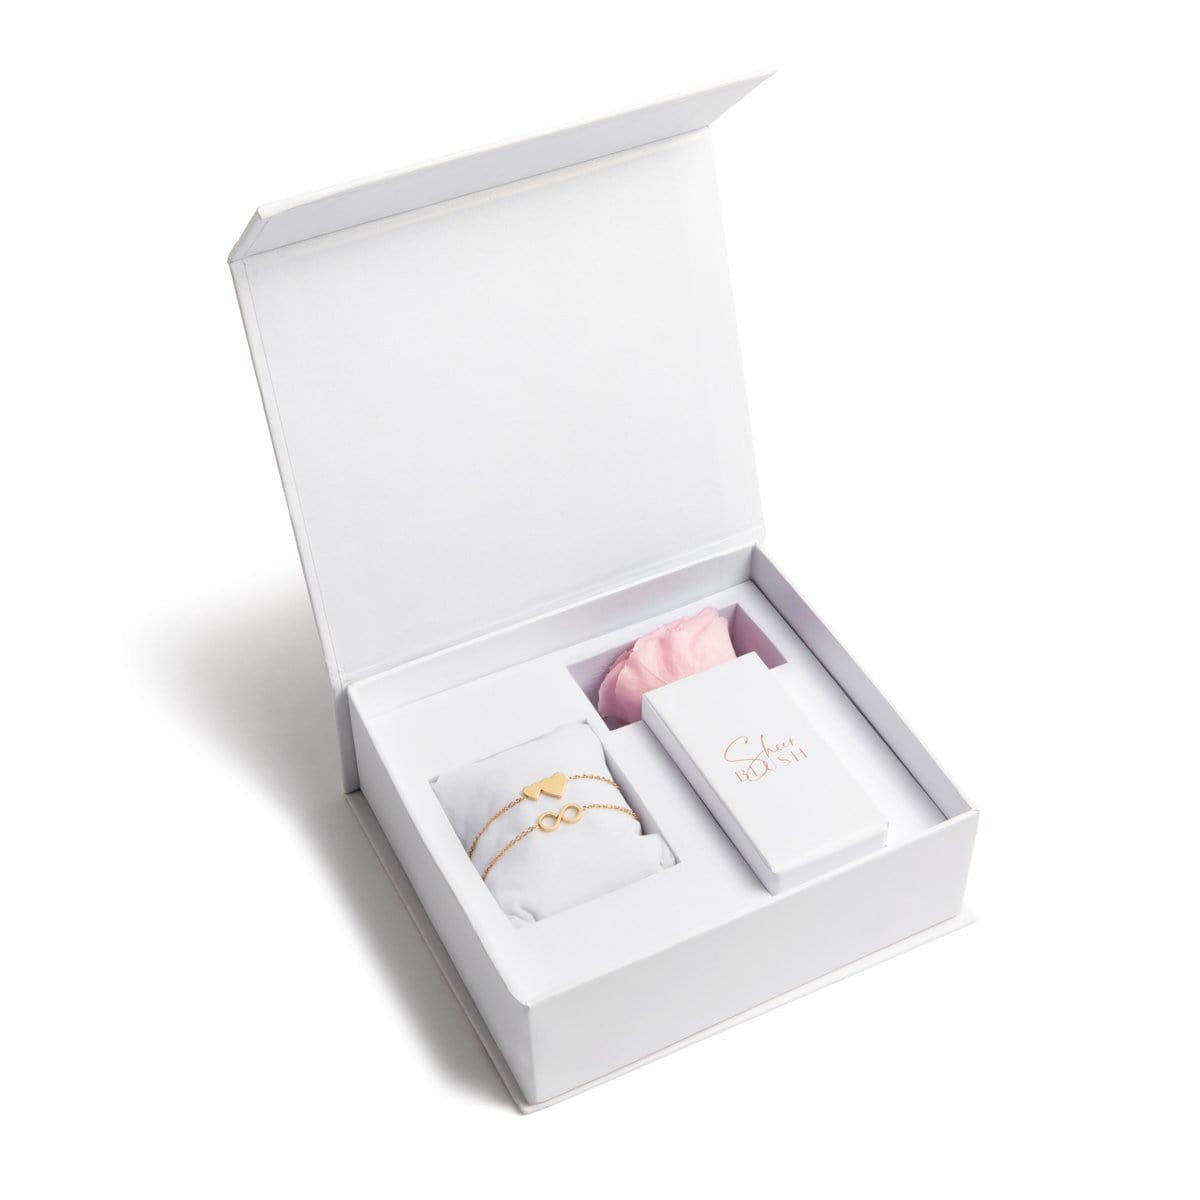 The Gold Infinite Love Geschenkset (Blush)